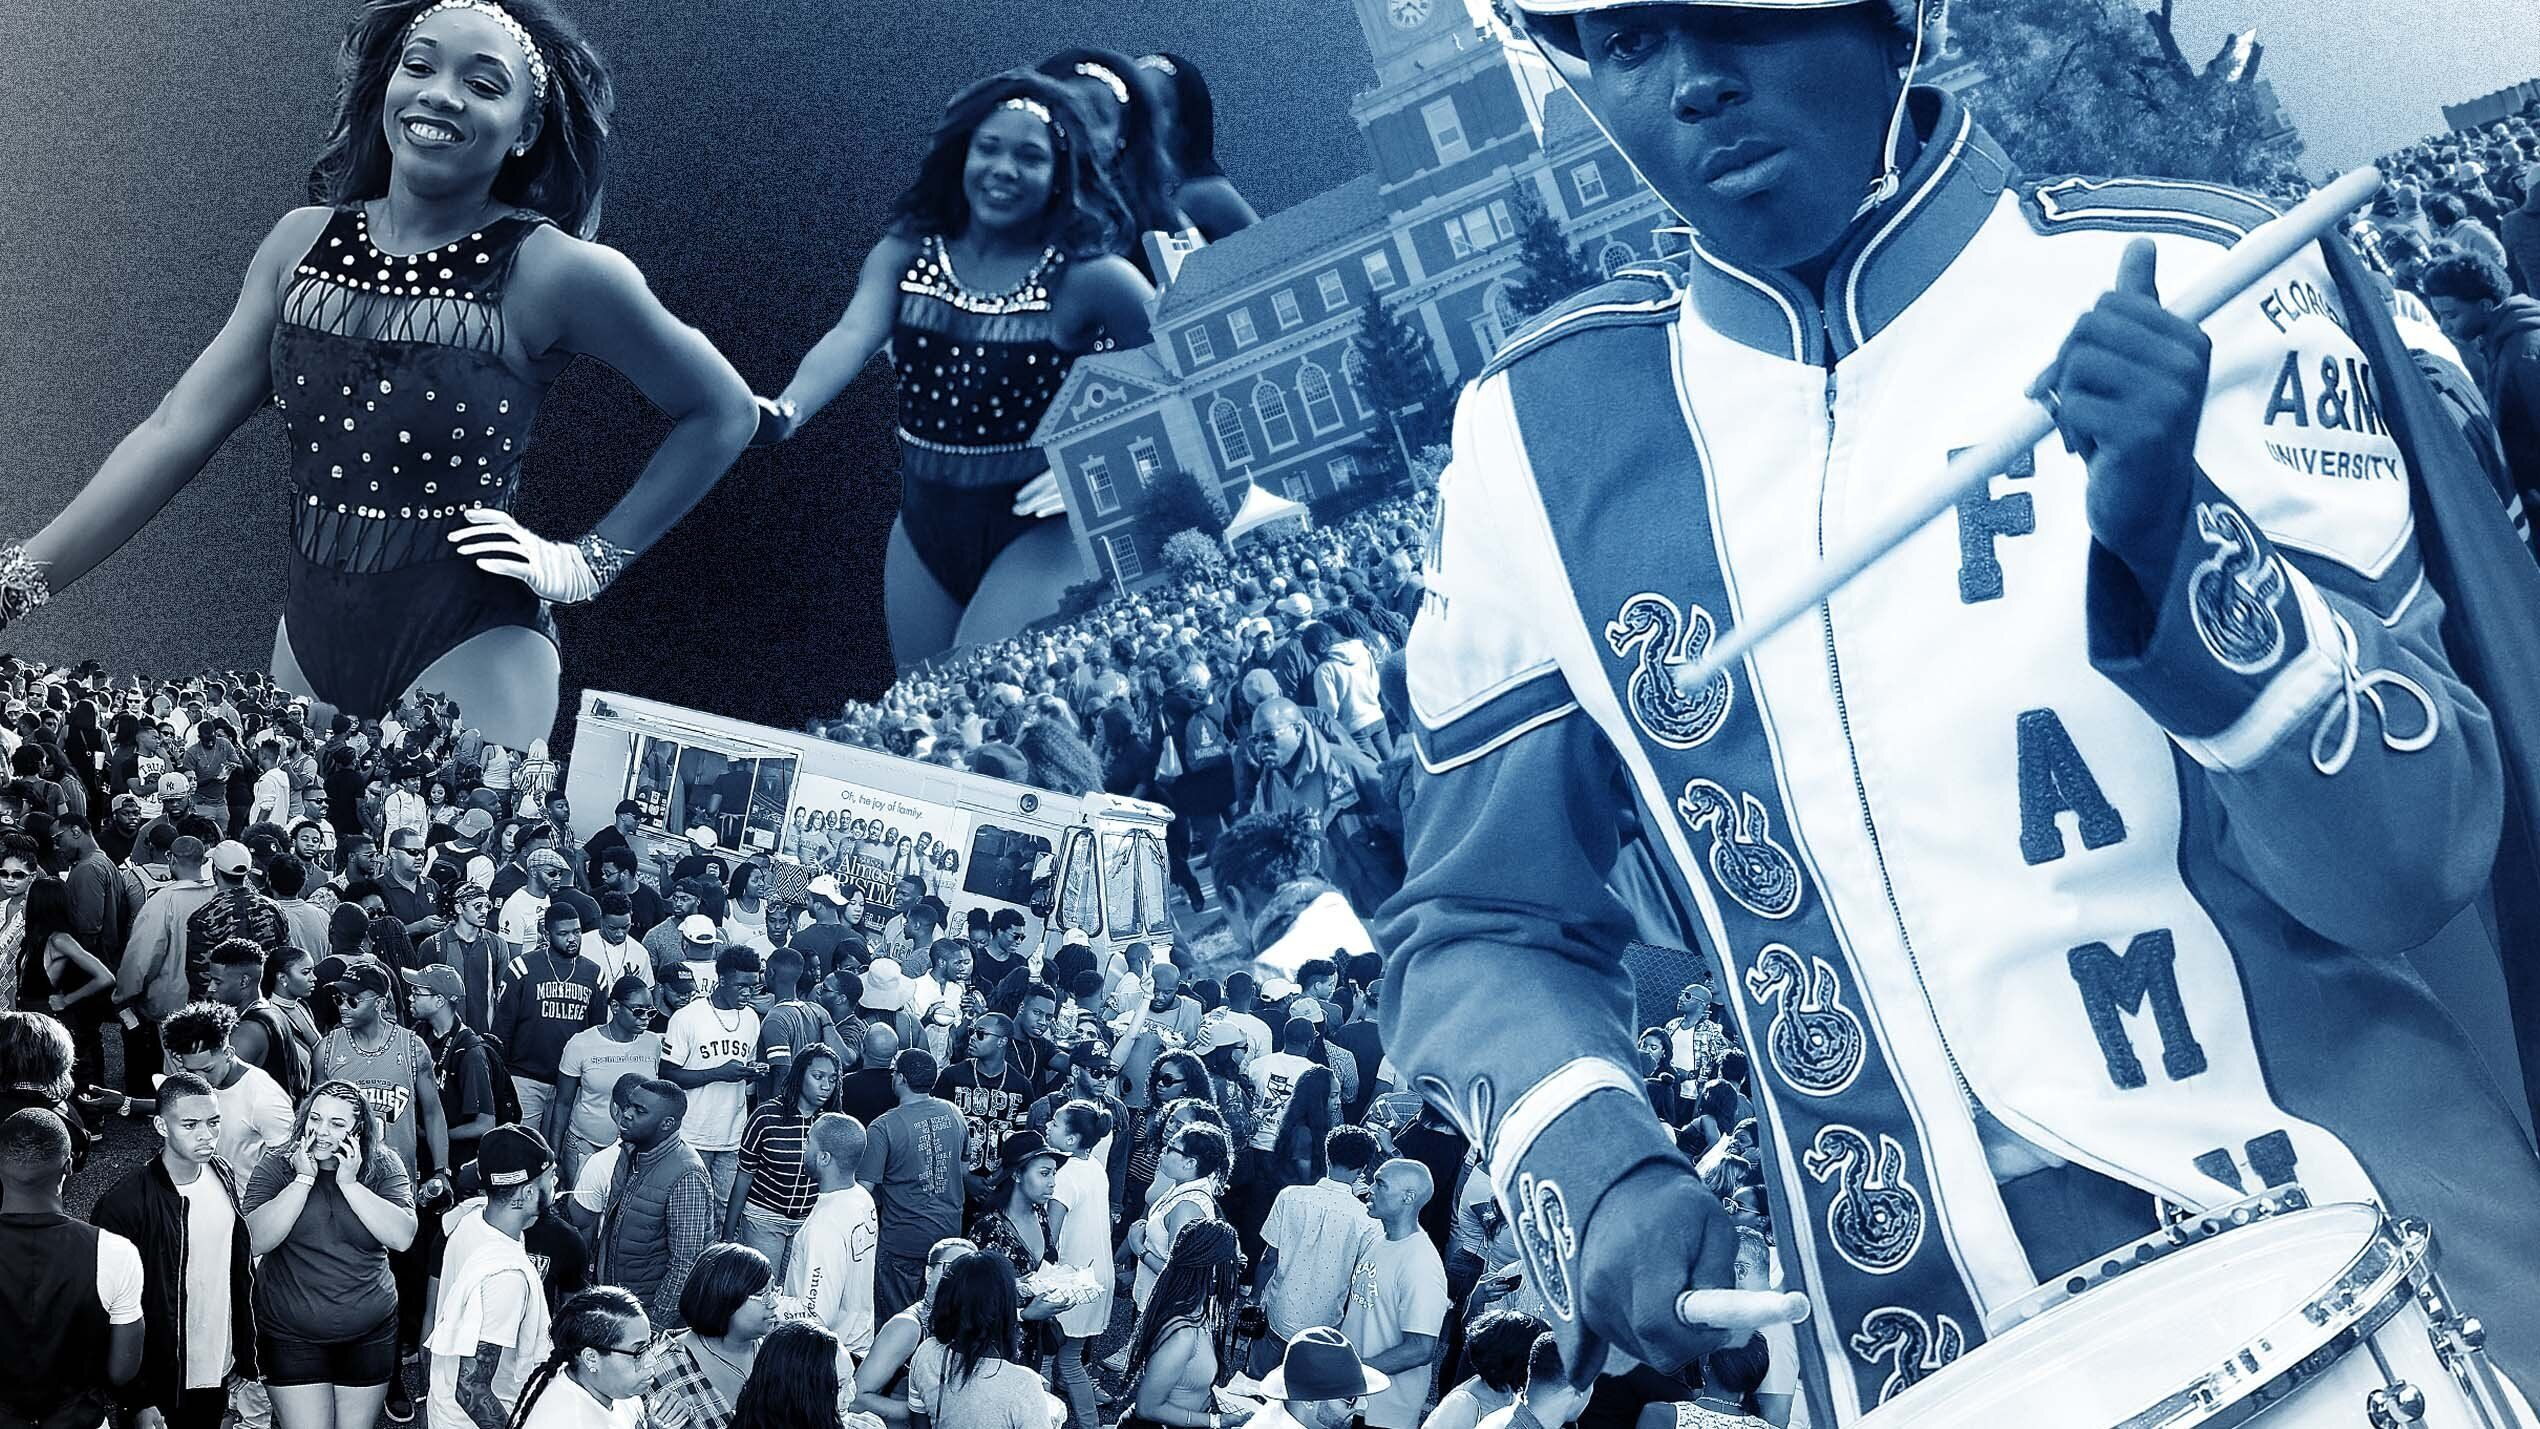 COVID-19 Canceled HBCU Homecomings. These Folks Are Keeping Their Spirit Alive.